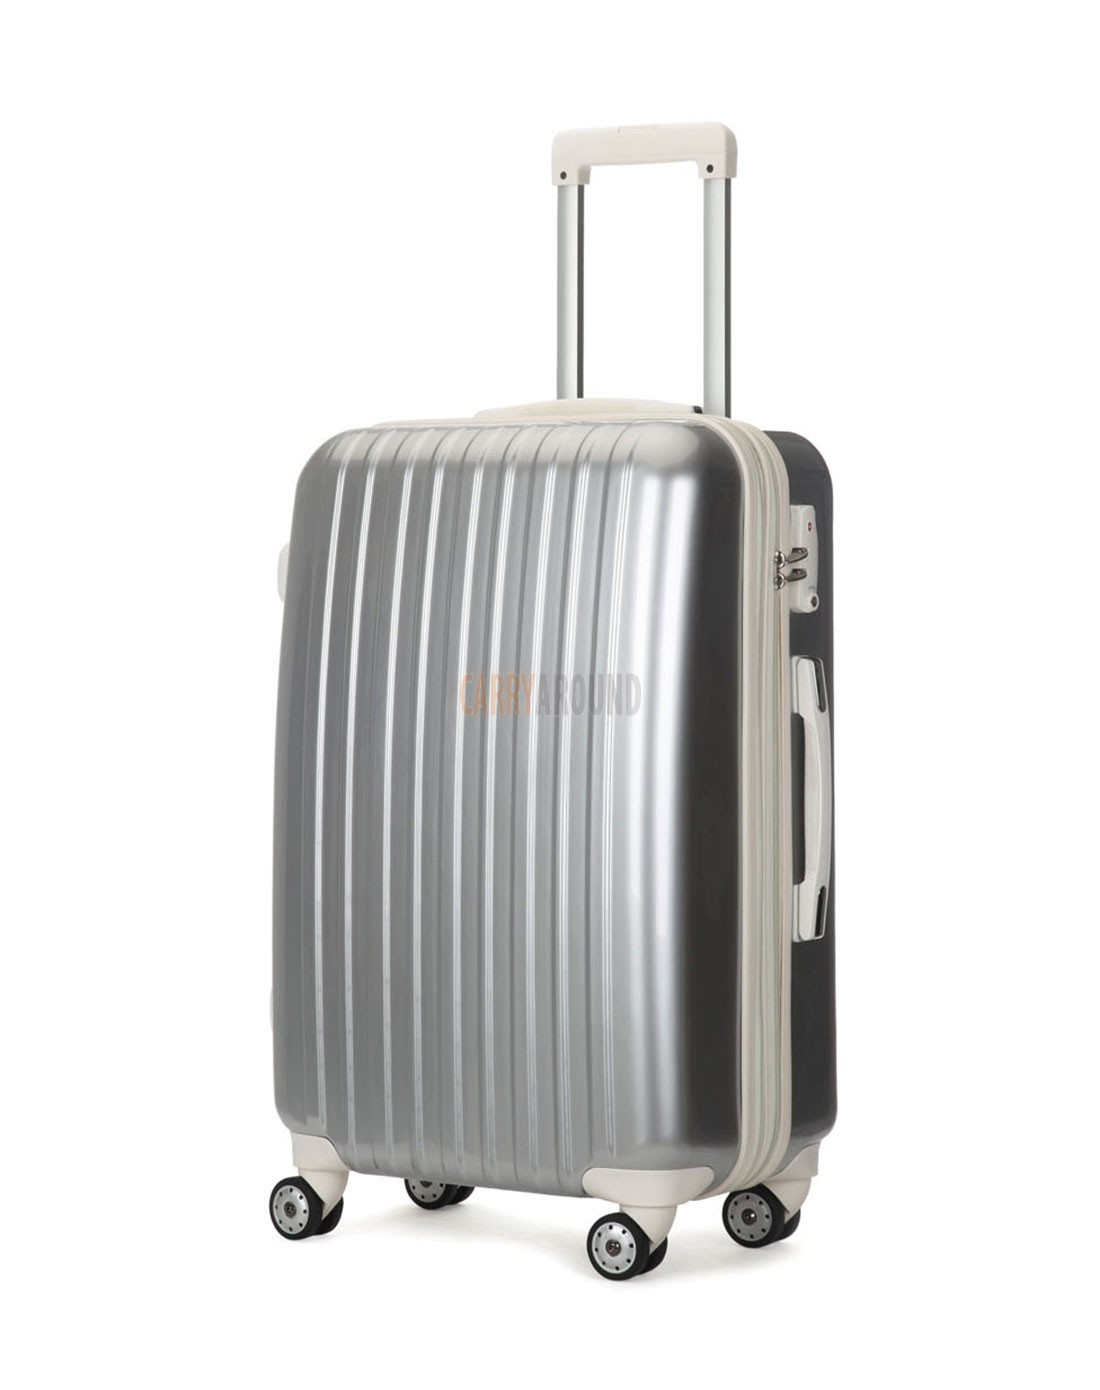 """AIRCROSS 2PC Set Luggage A55 Grey Hard Case Expandable Trolley Luggage - 20""""24"""""""